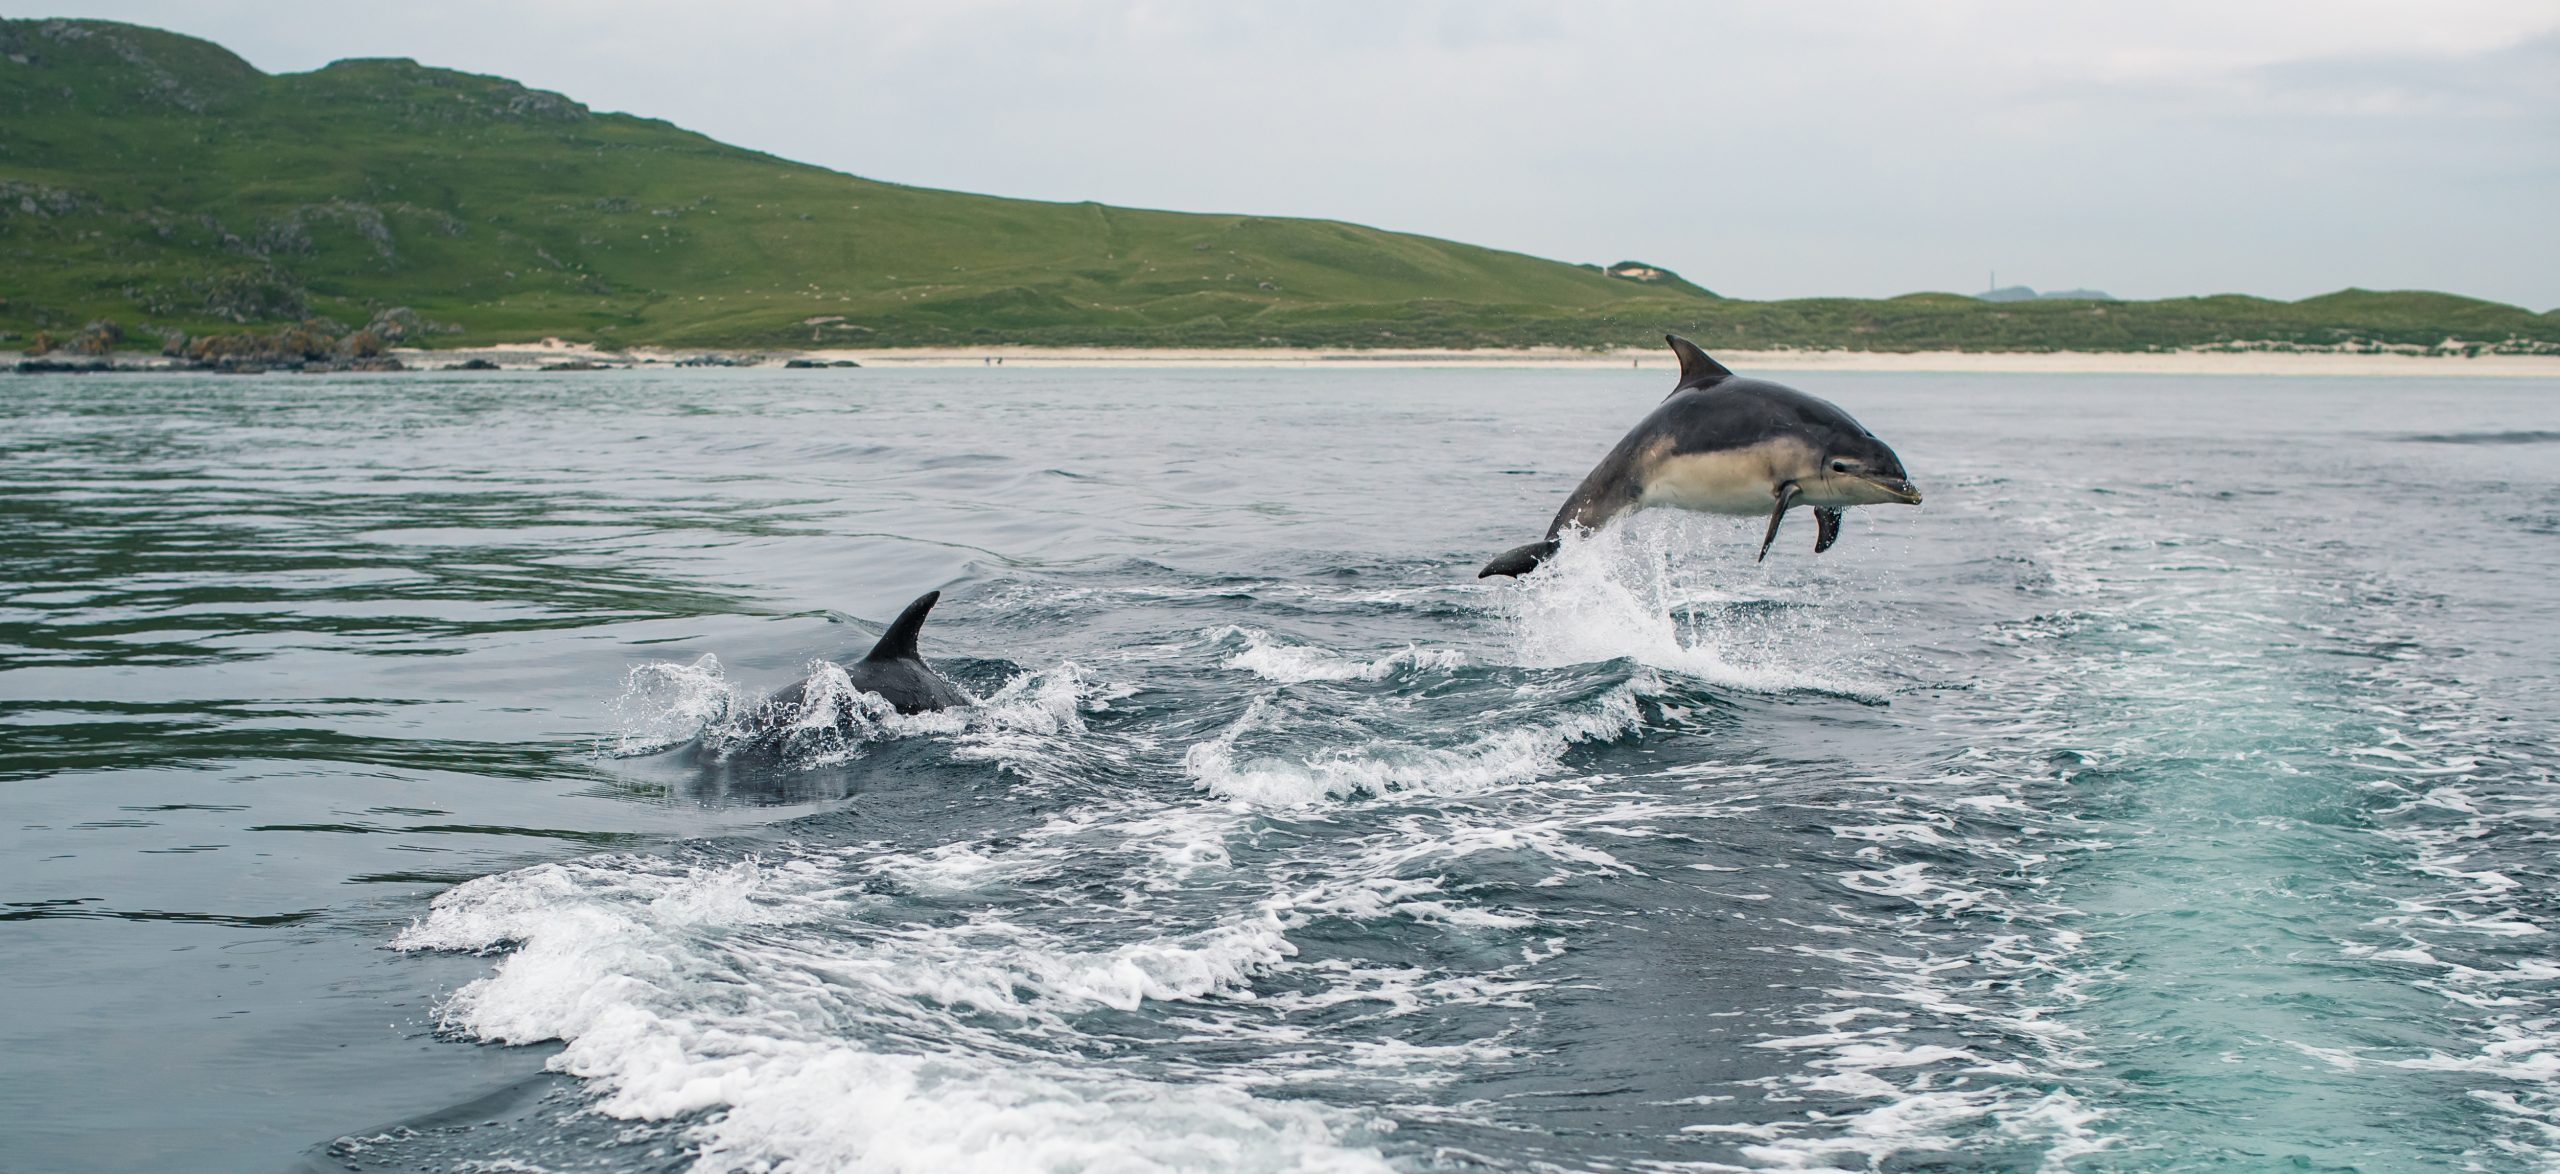 Dolphin jumping out of the water on the Isle of Tiree